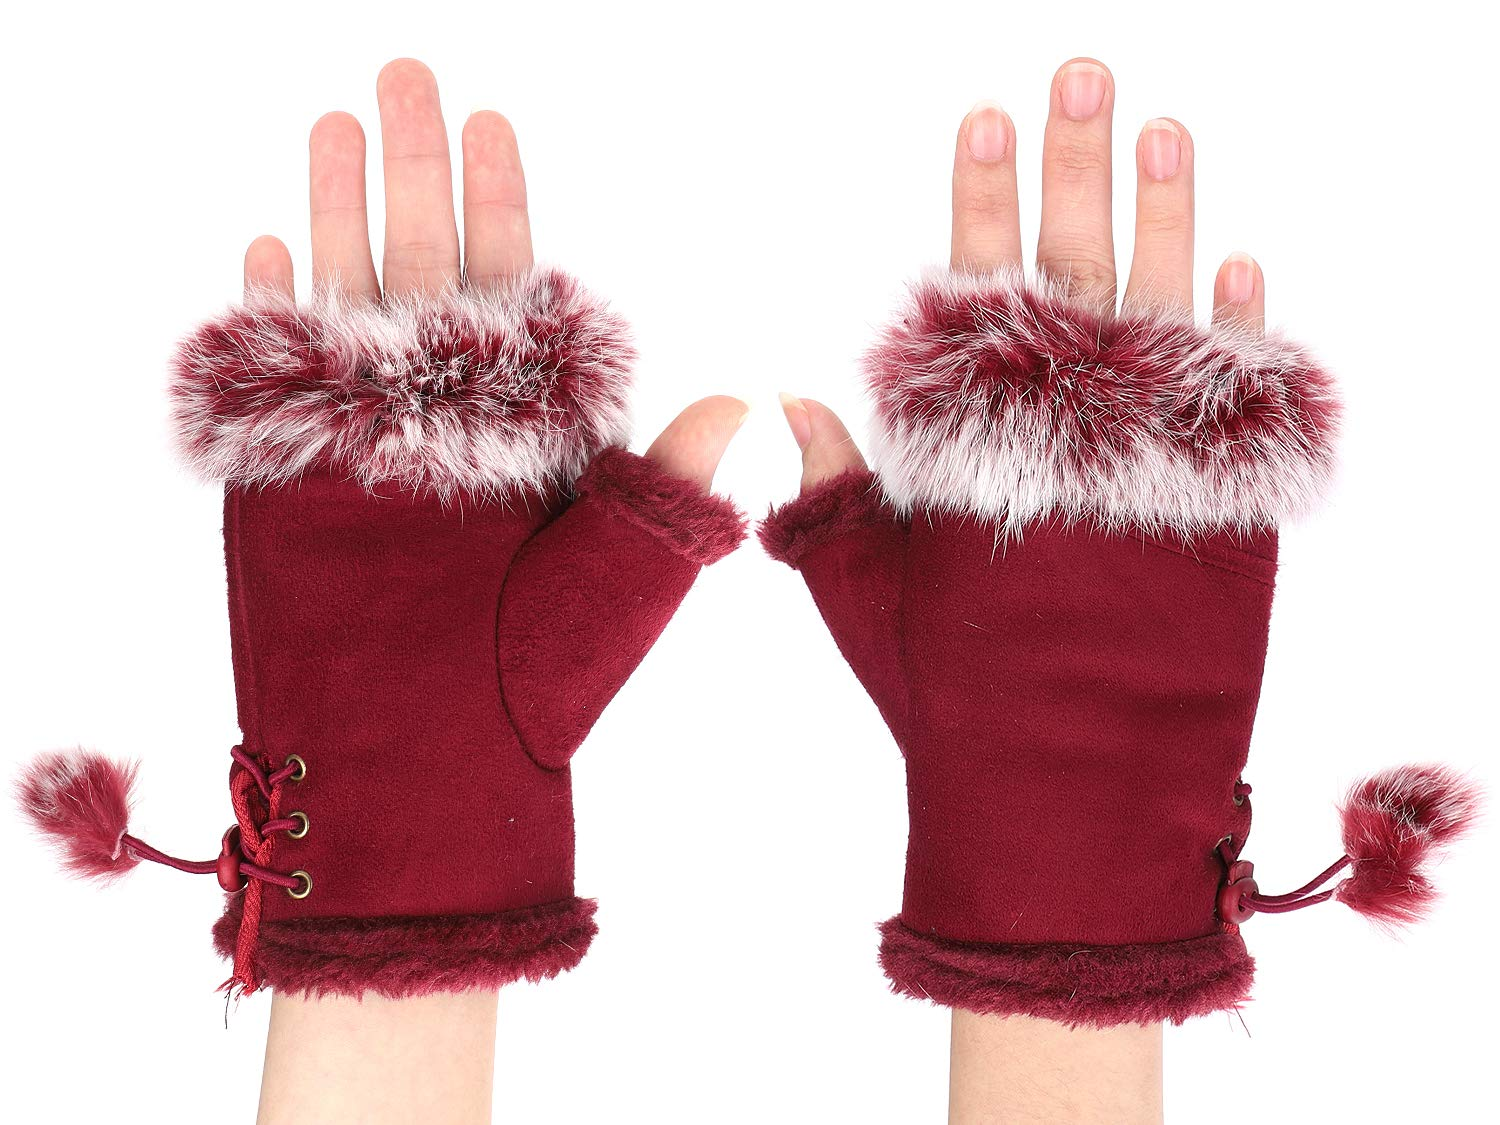 QCHOMEE Mittens Winter Woman Girl Gloves Half Finger Faux Fur Thick Warm Mittens Handle Adjustable Heating Gloves Comfortable for Car Bike Motorcycle Racing Birthday